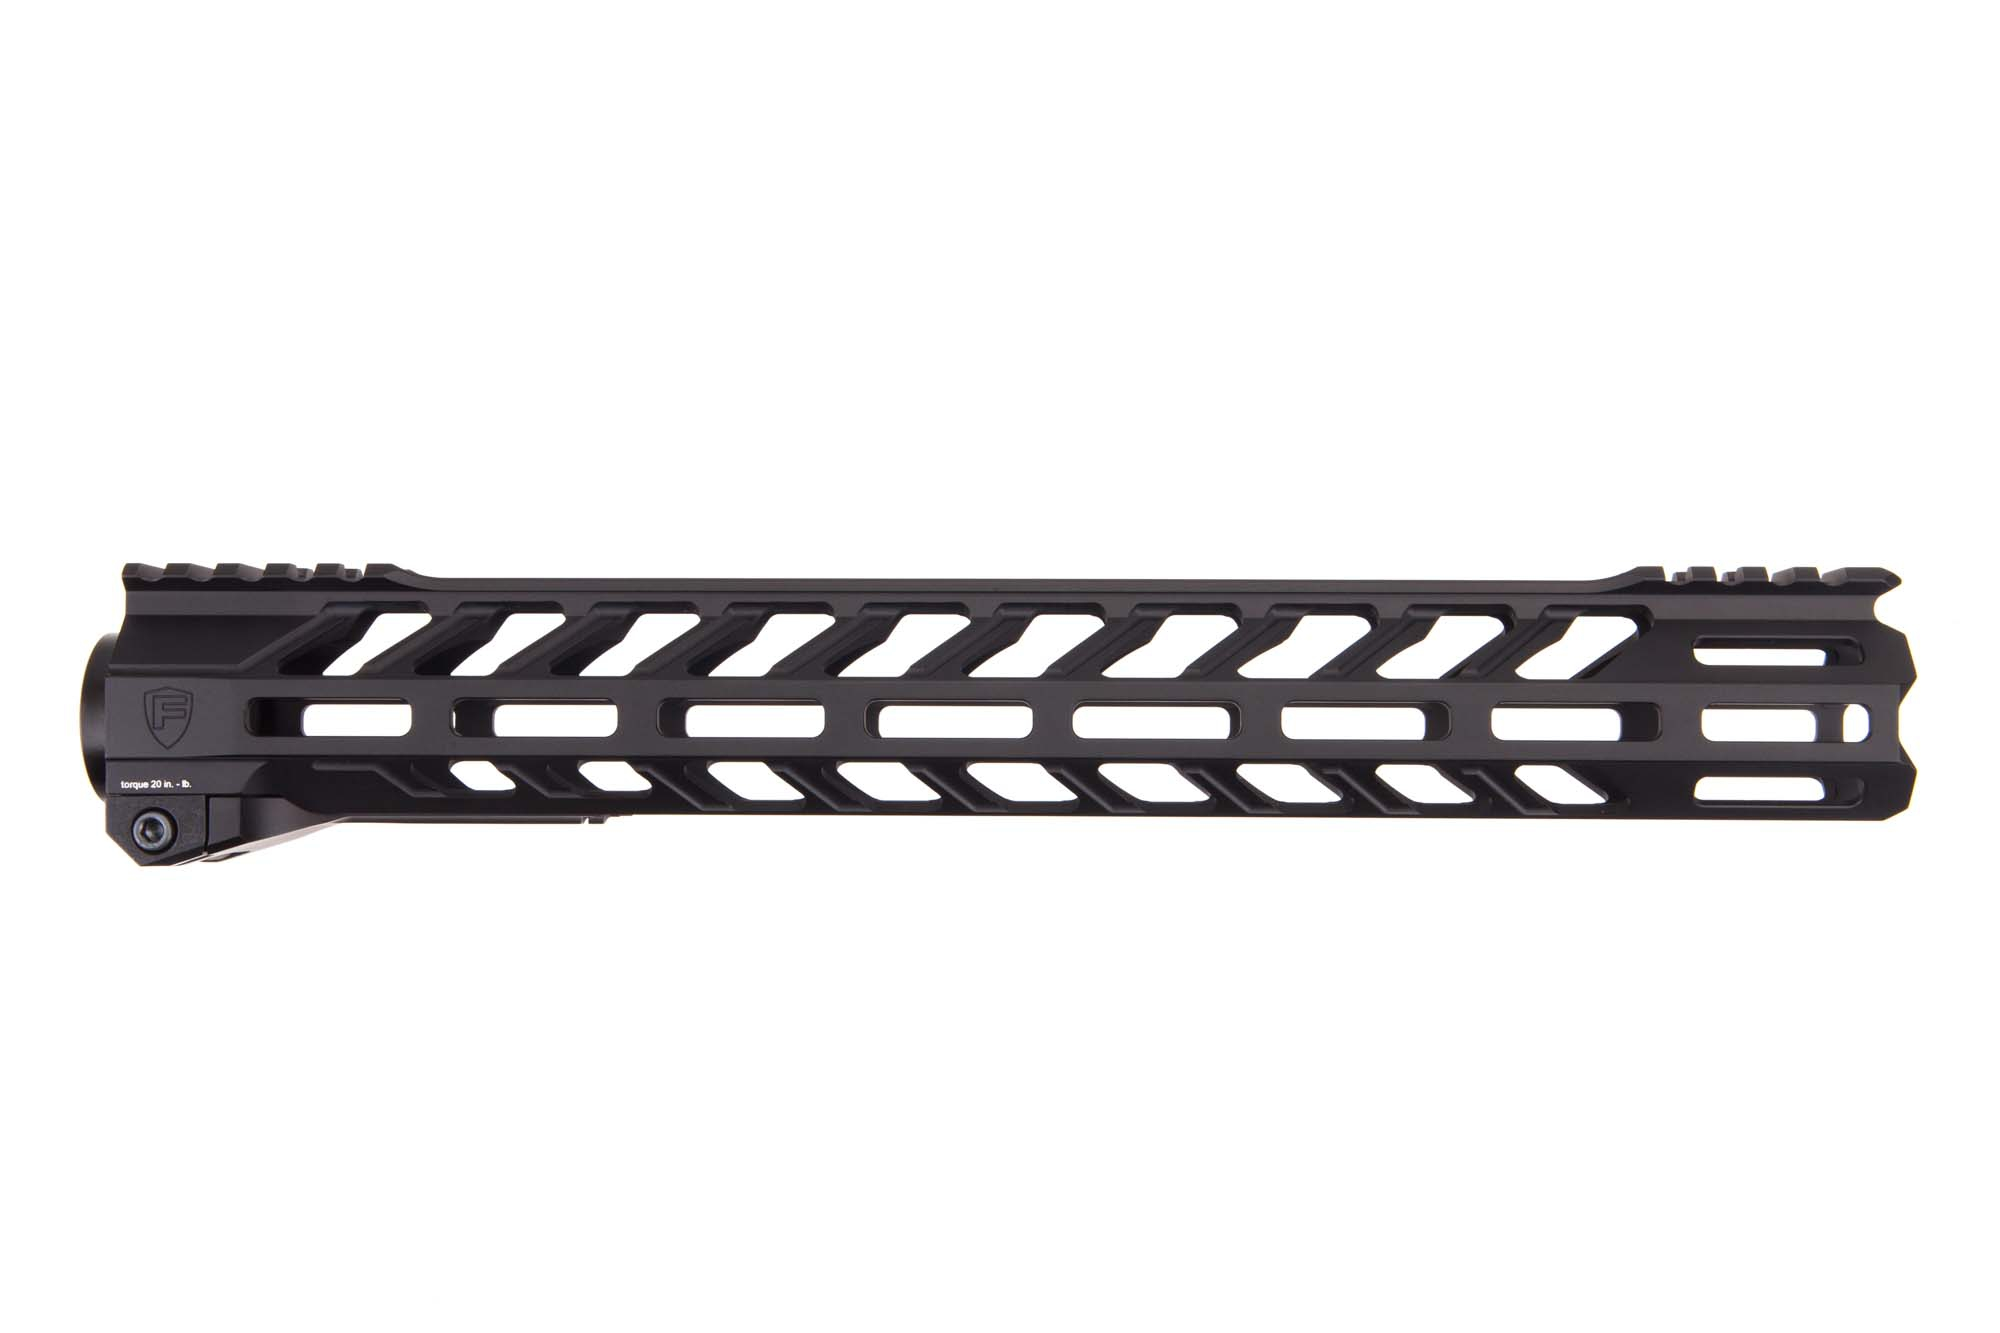 Fortis SWITCH AR15 MOD 2 Rail System - MLOK